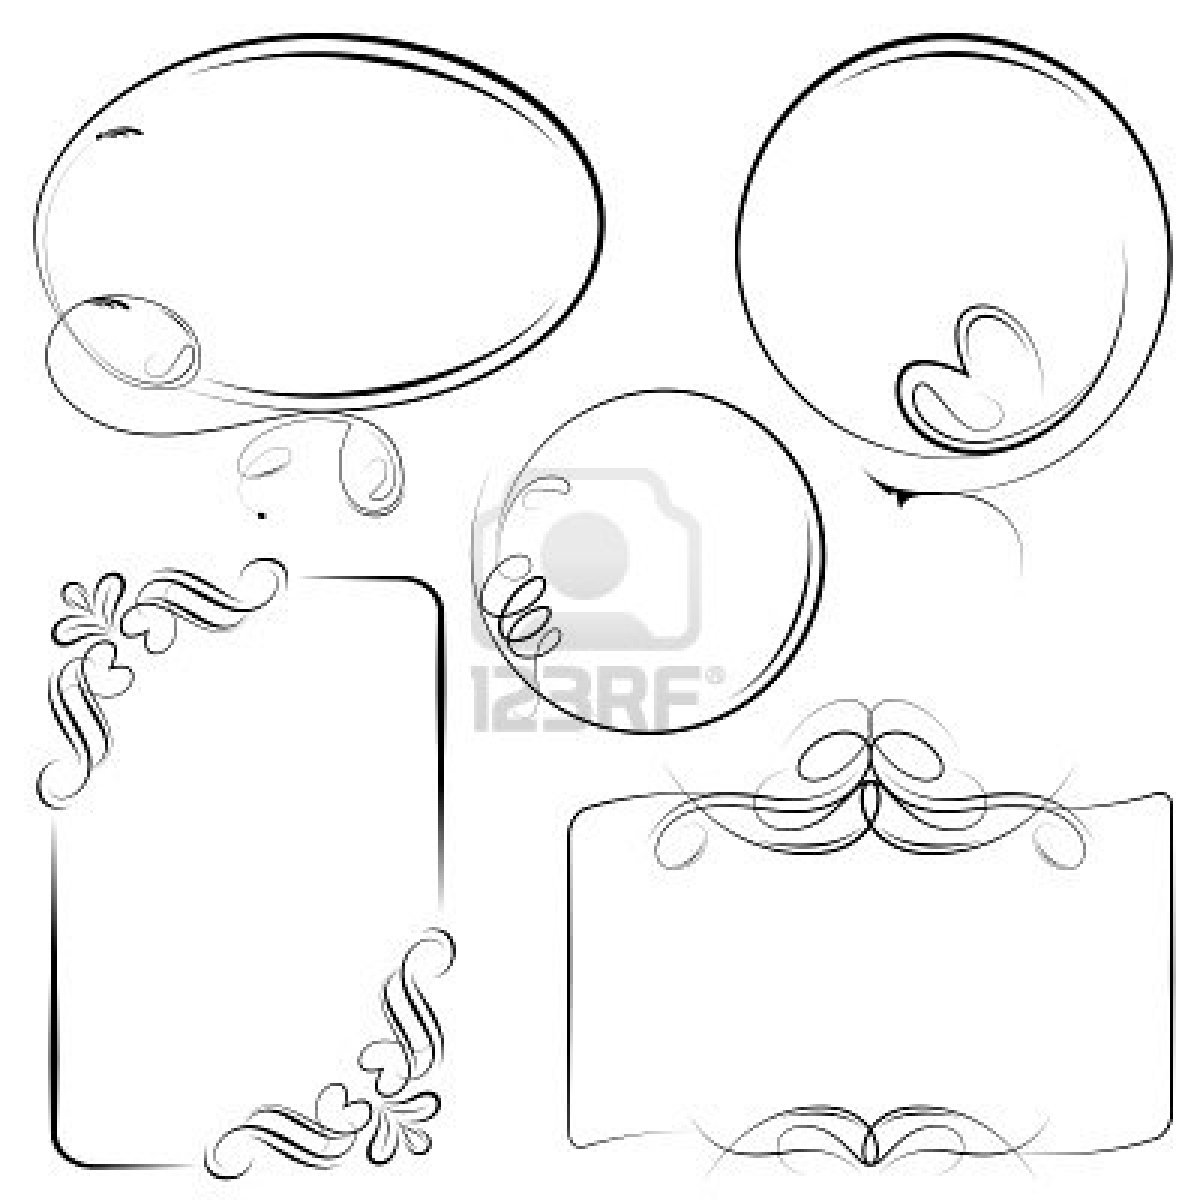 sketchnote cadres 2 frames more sketchnoting art sketch coloring page. Black Bedroom Furniture Sets. Home Design Ideas